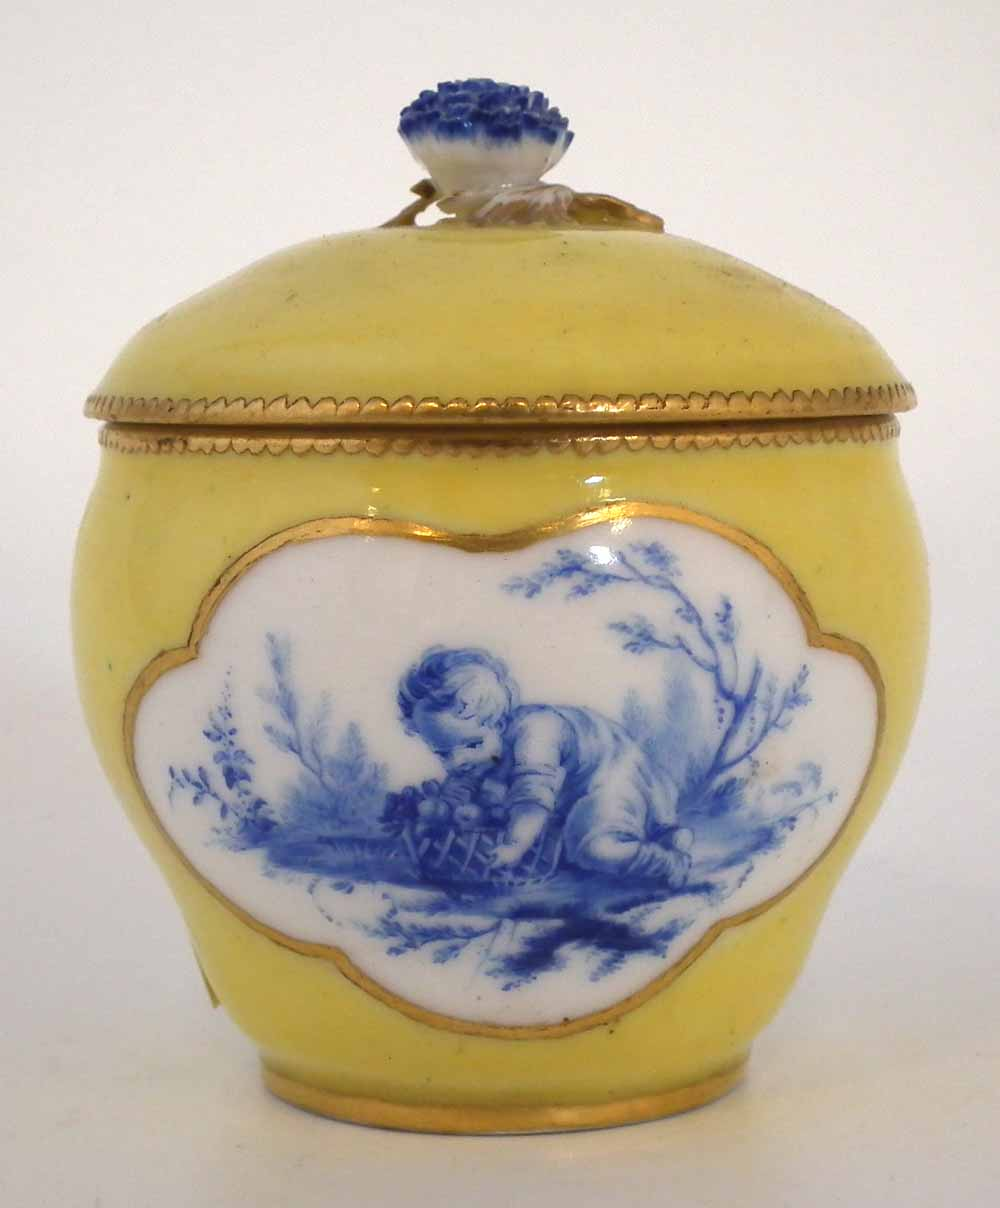 Vincennes sucrier lidded bowl